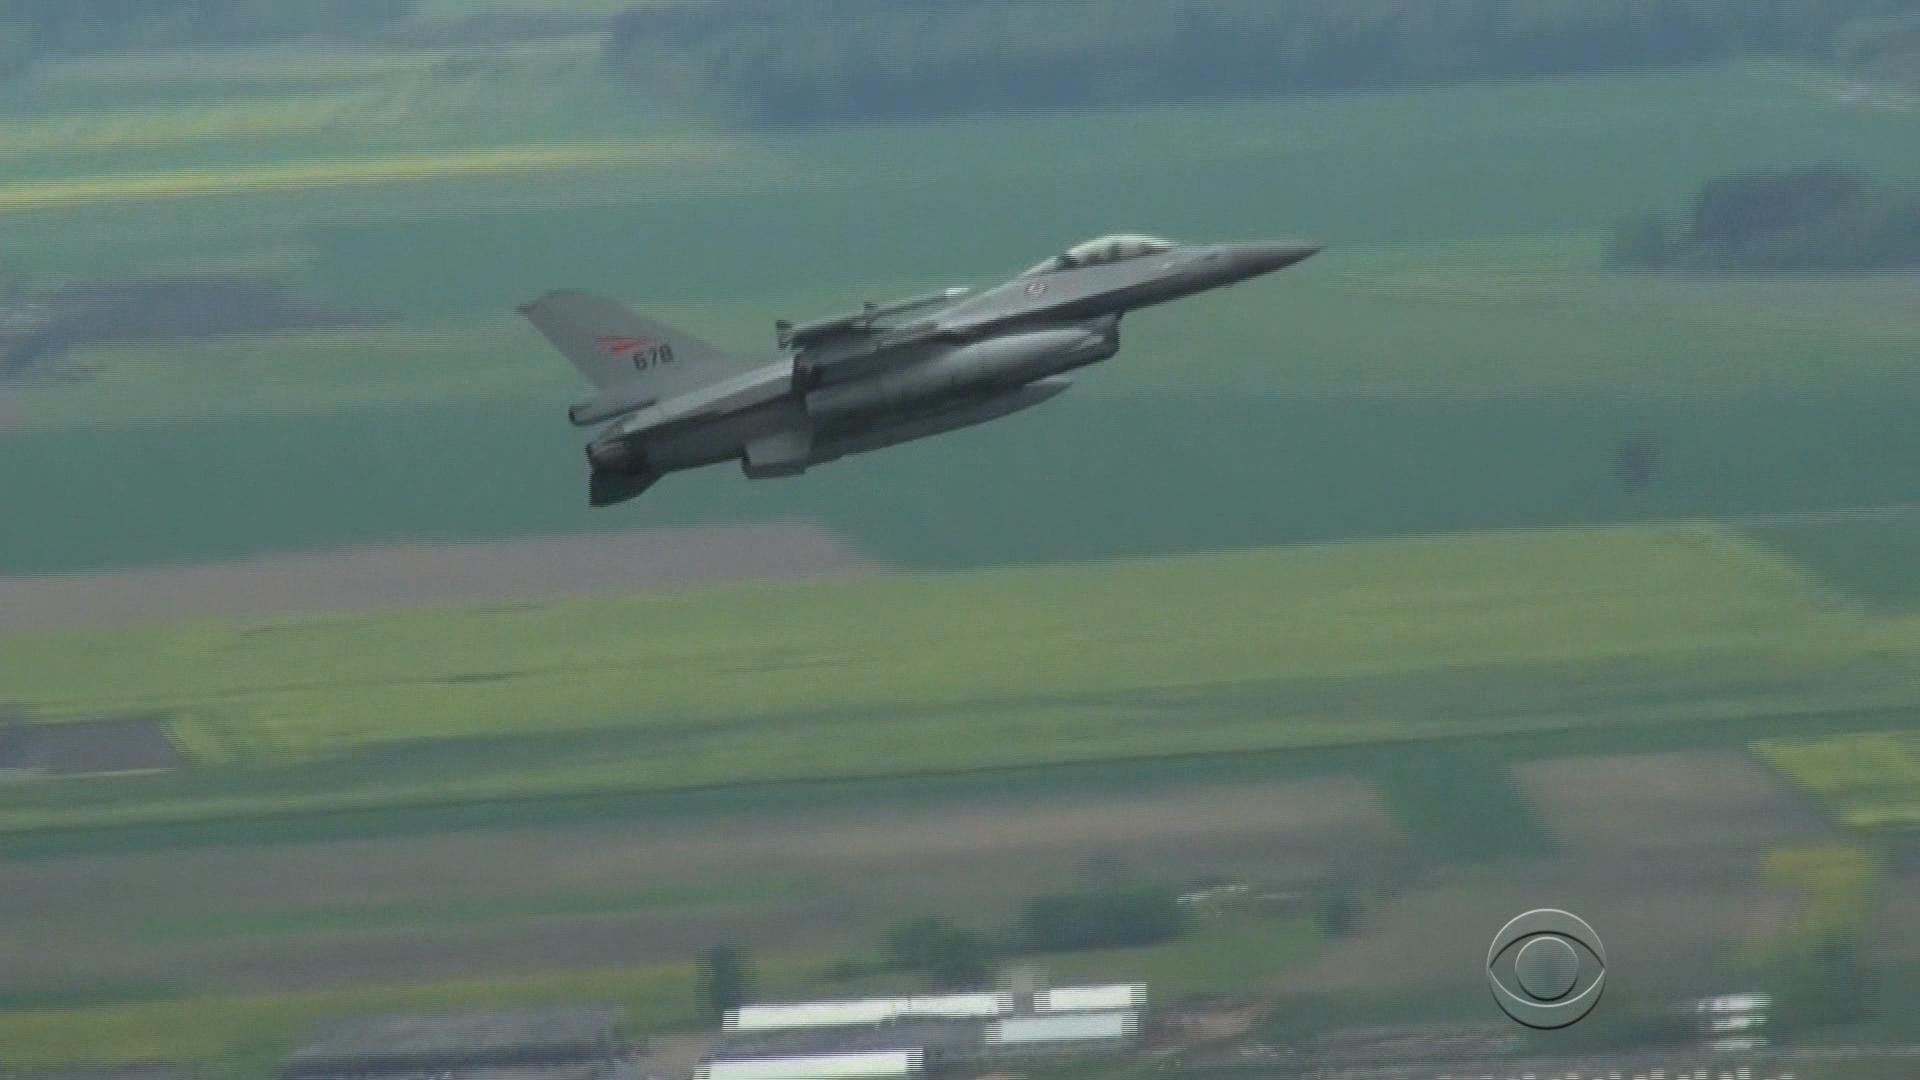 NATO and Russia watch one another closely in Eastern Europe